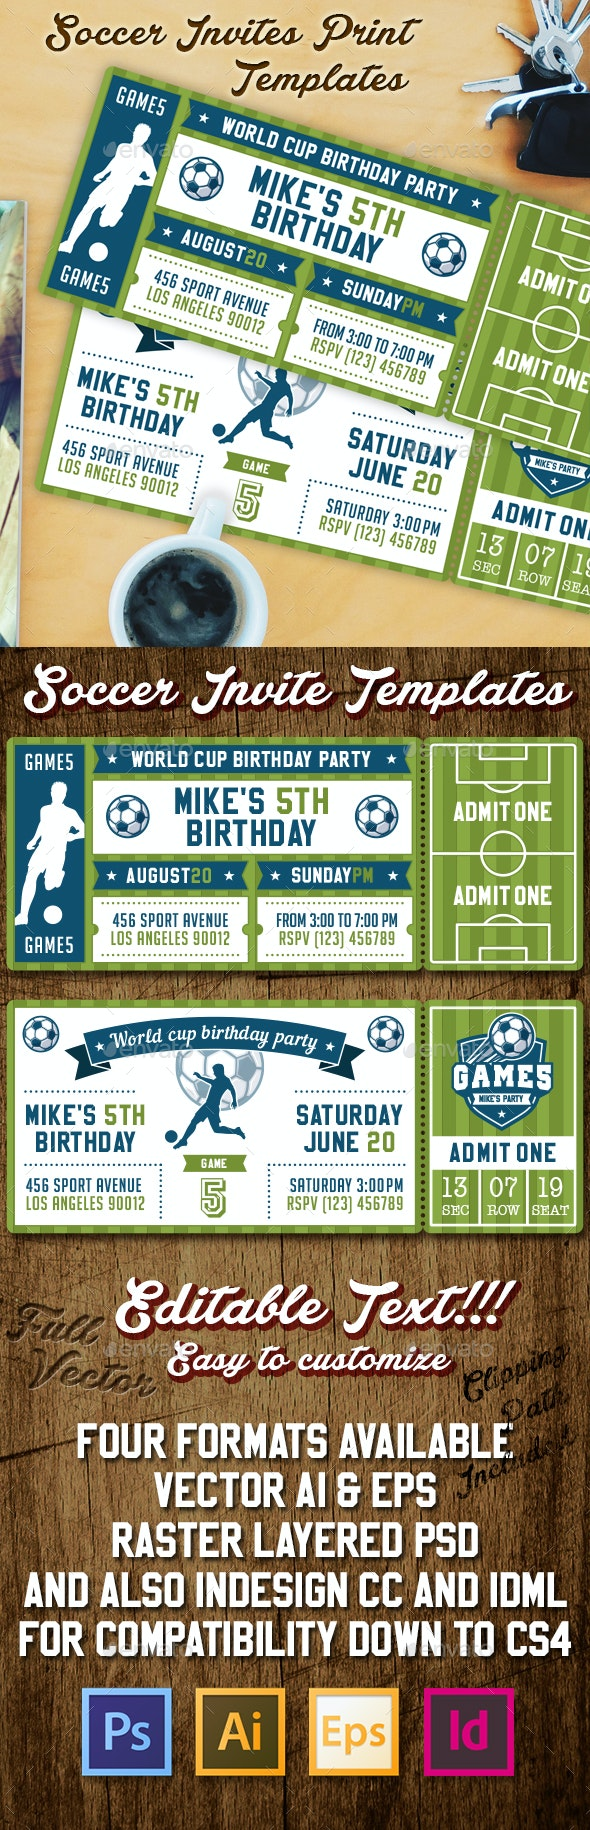 Vector Soccer Party Invites - Sports/Activity Conceptual